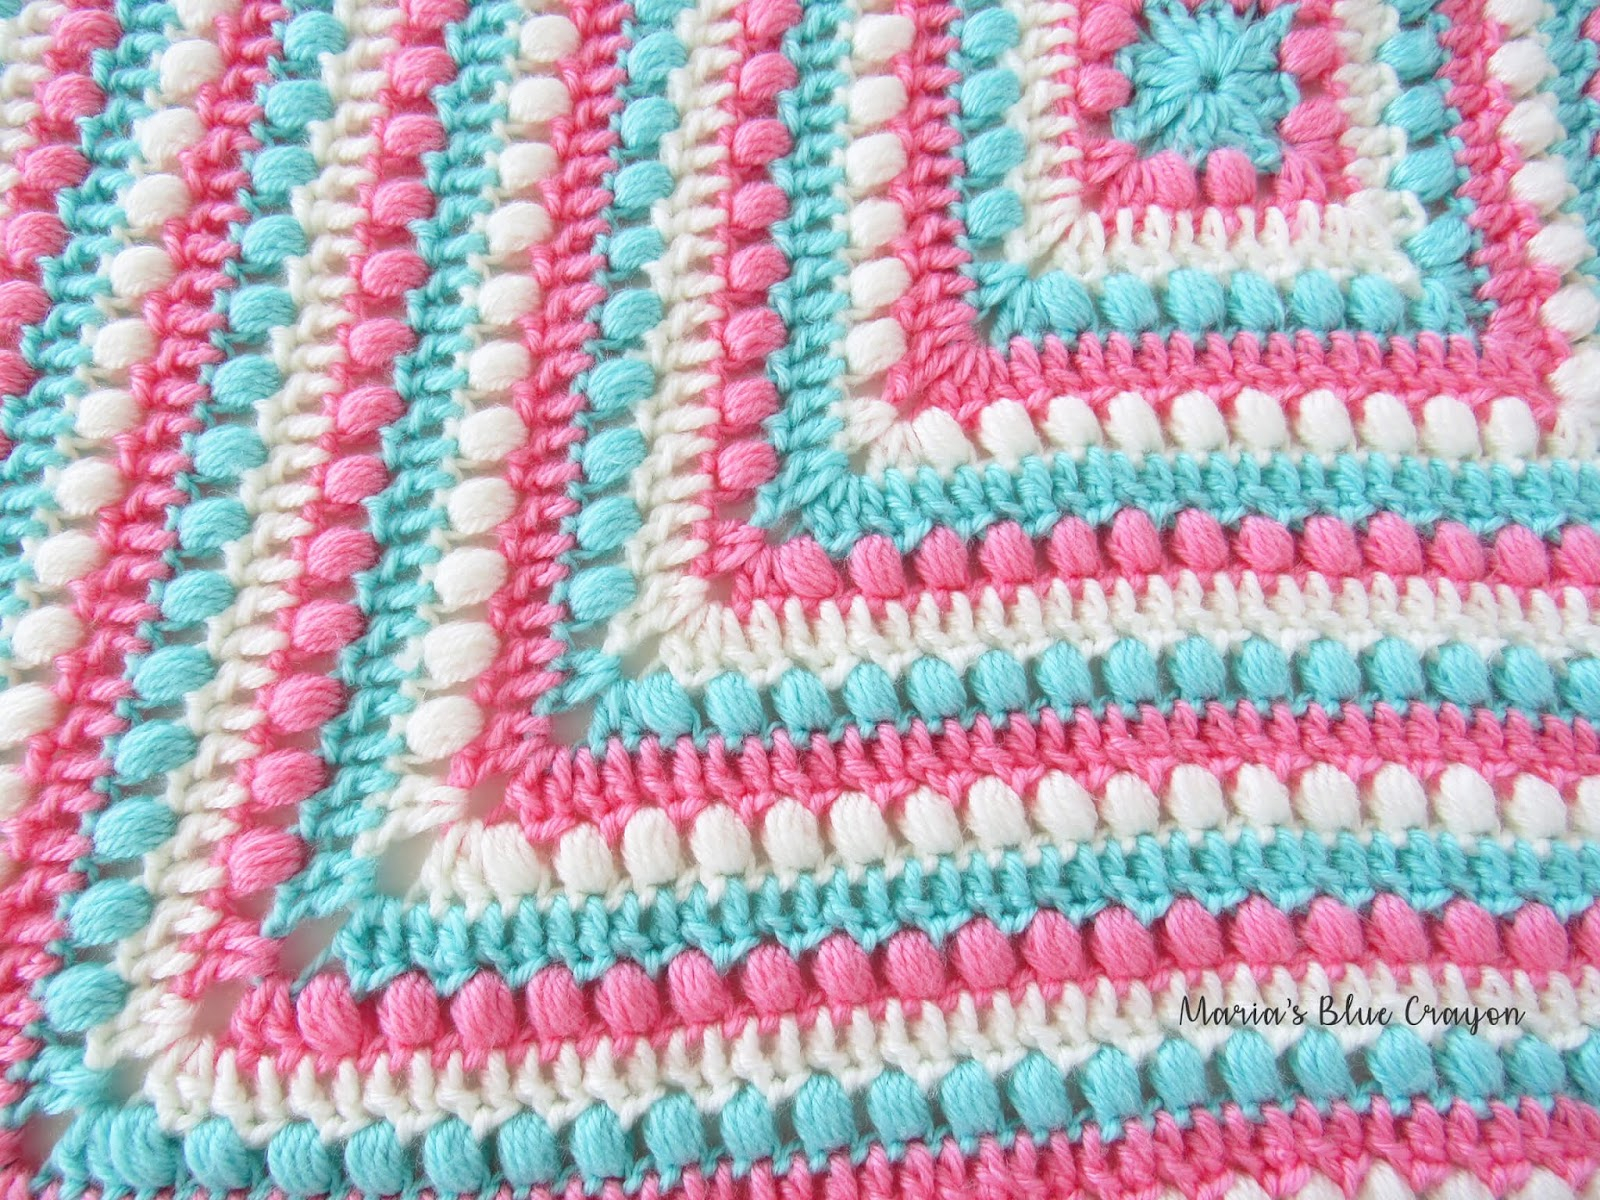 Things To Crochet  Bobbles And Stripes Granny Square Blanket Free Easy Crochet